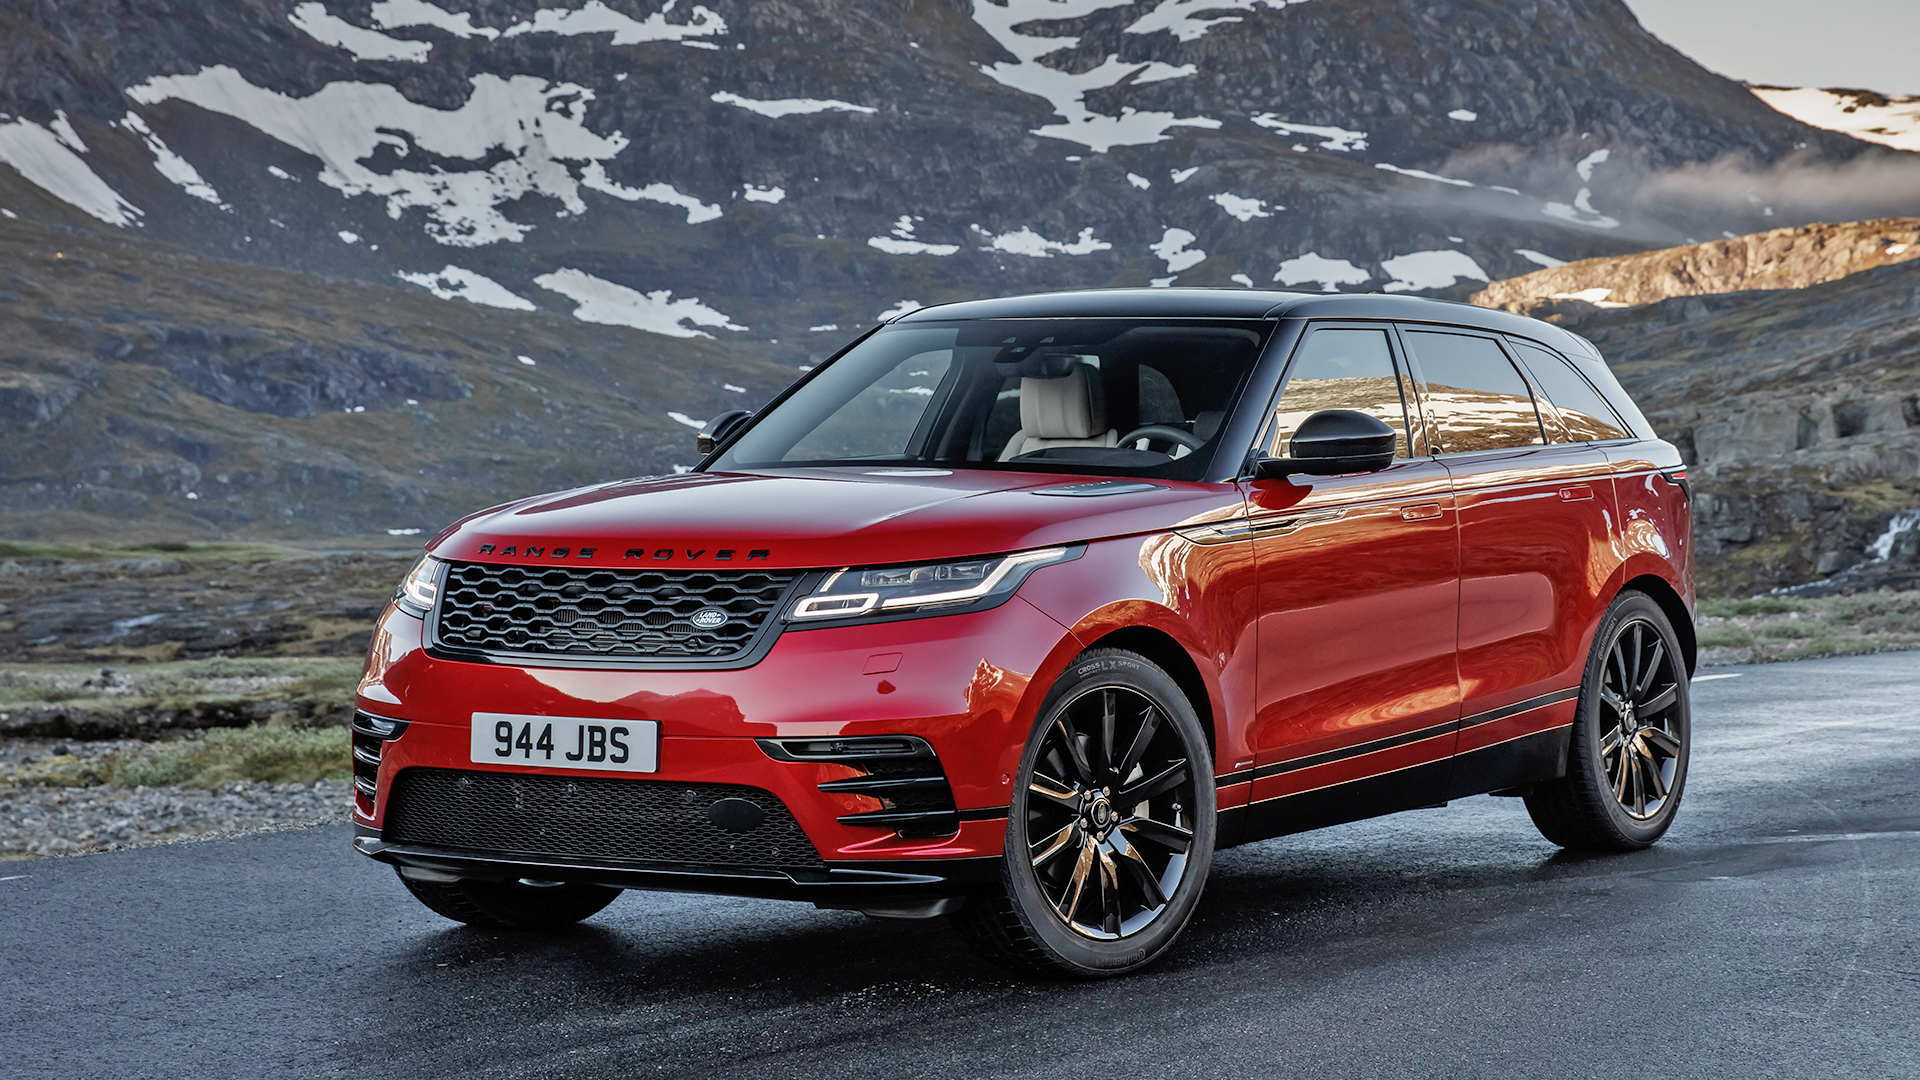 Range Rover Velar Price In India Specification Review